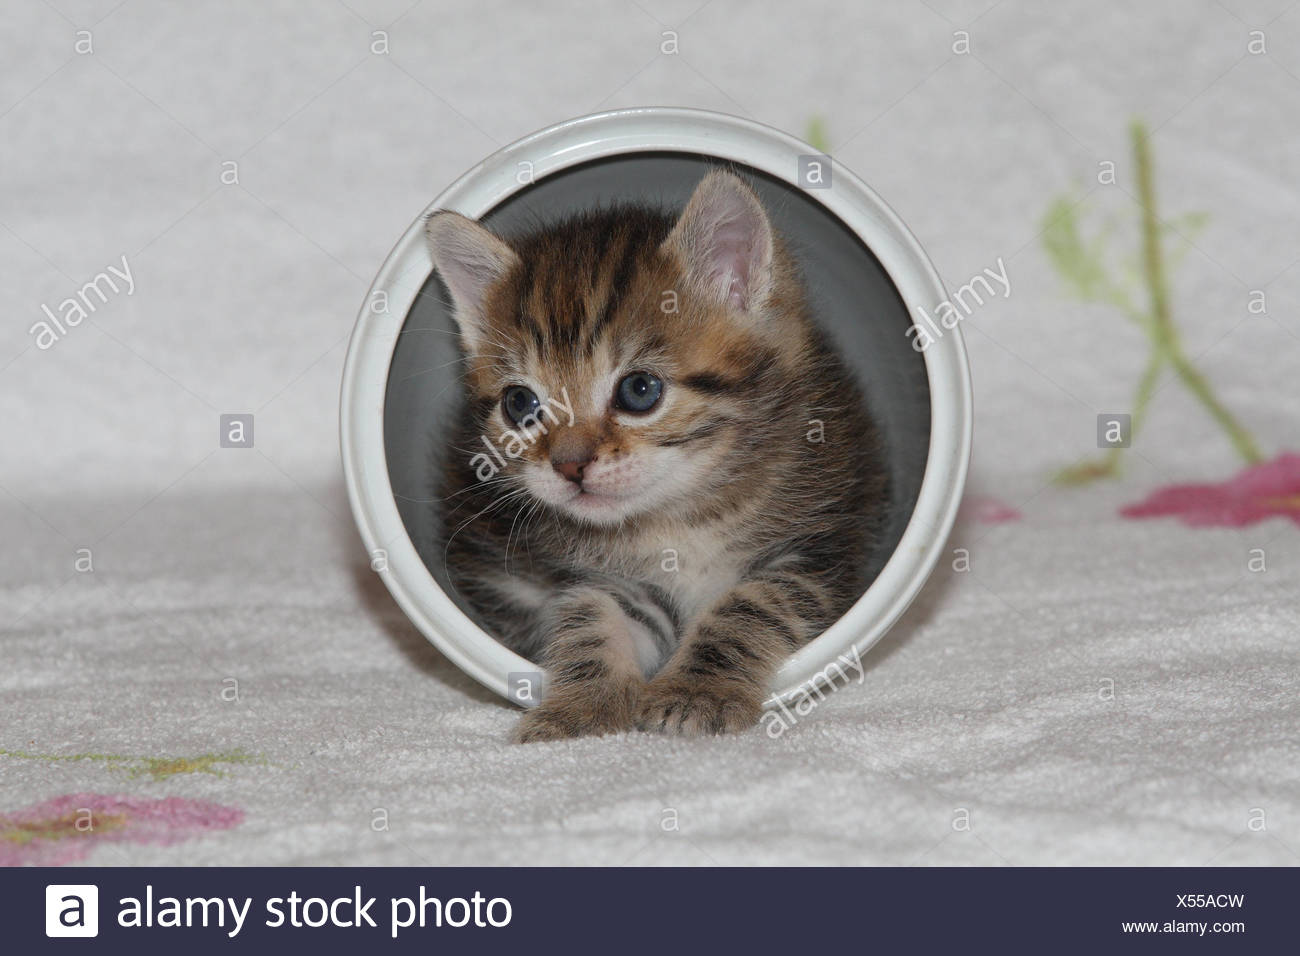 Pot, cat, young, herauskrabbeln, bed, animals, mammals, pets, small cats, Felidae, domesticates, house cat, young animal, kitten, small, awkward, clumsy, creep, creep, curiosity, hiding place, play, hide, sweetly, individually, only, striped, tin, bowl, young animals, animal baby, inside, - Stock Image